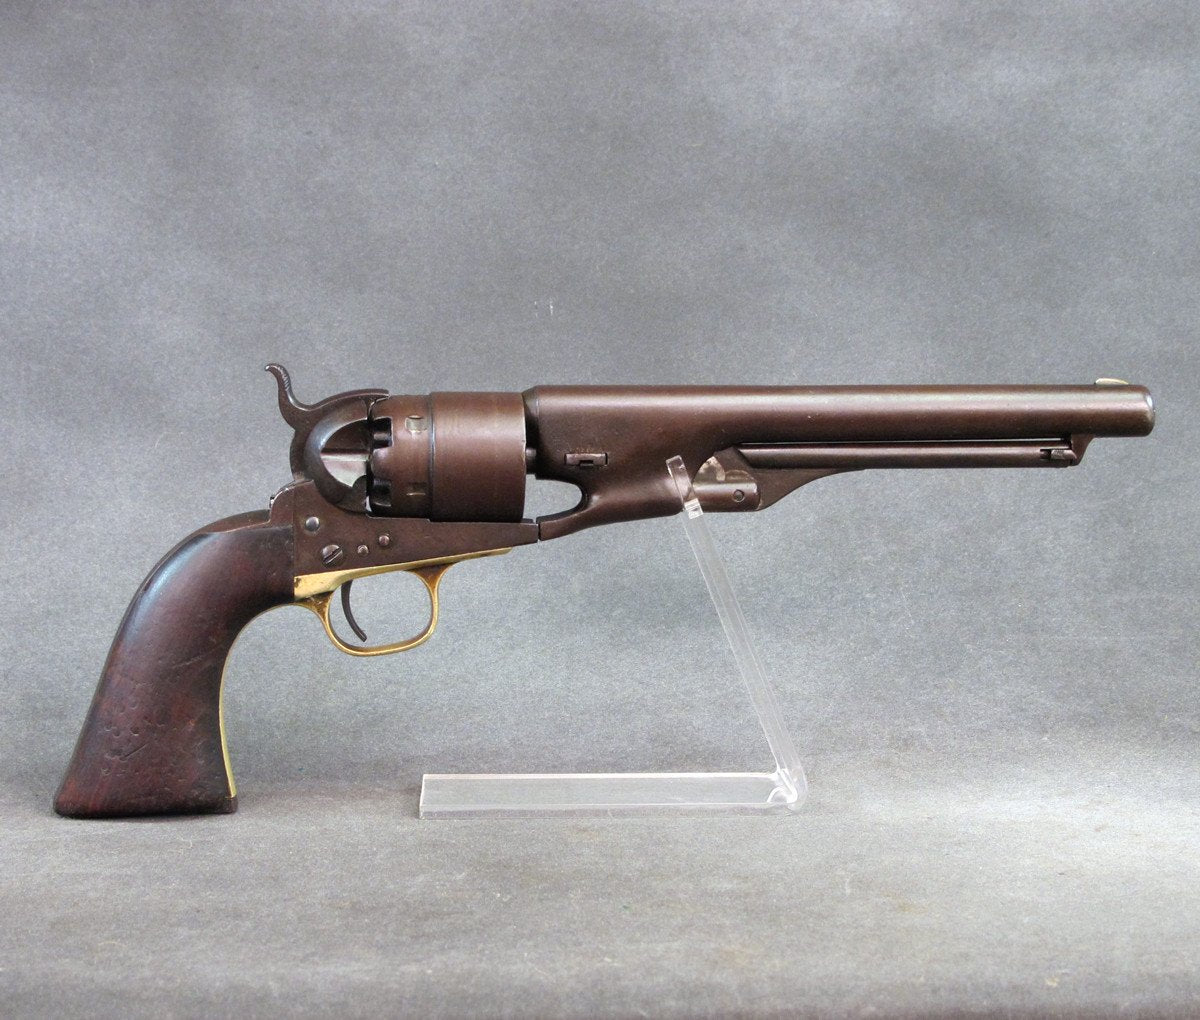 9335fd06630 Tap to expand · Next · Original U.S. Civil War Colt Model 1860 Army Revolver-  Manufactured 1862 ...